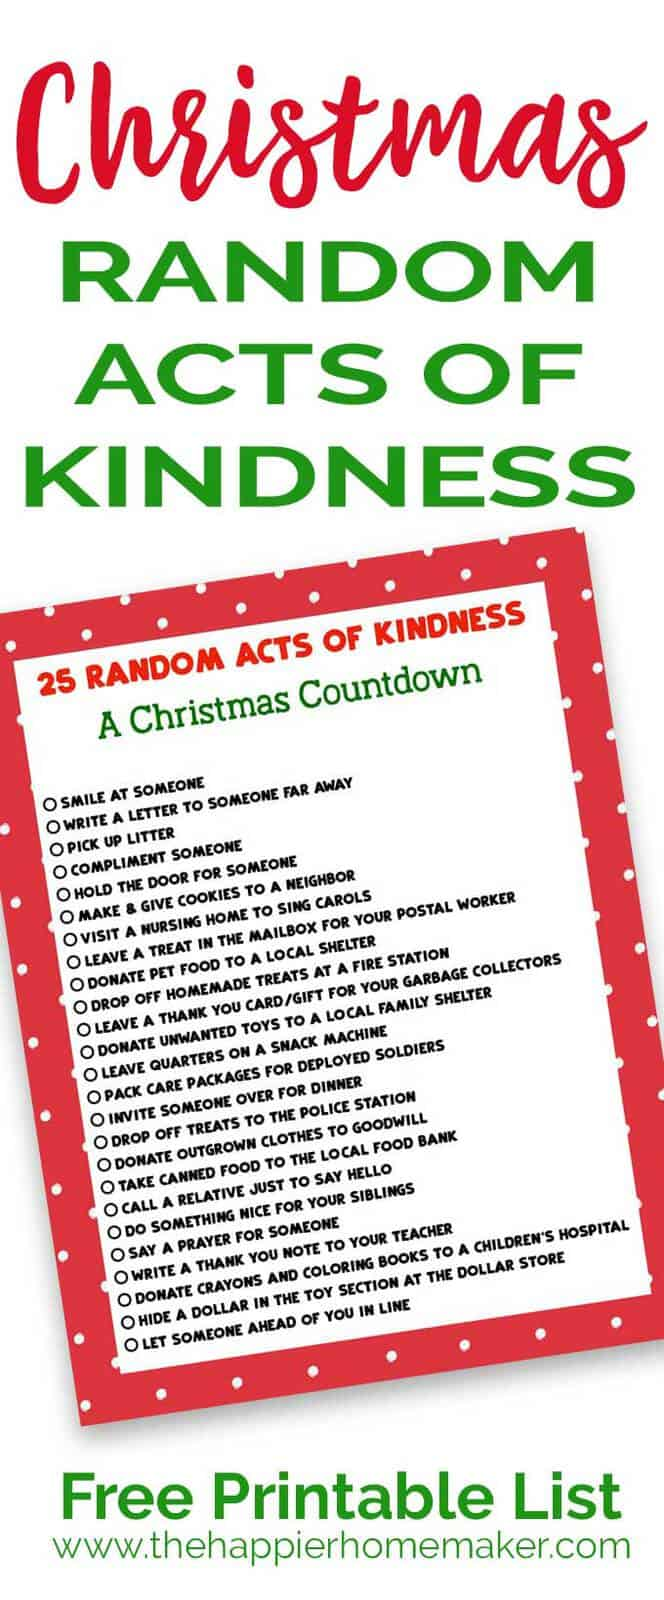 Keep the true meaning of Christmas with this printable list of 25 Random Acts of Kindness Christmas Countdown.